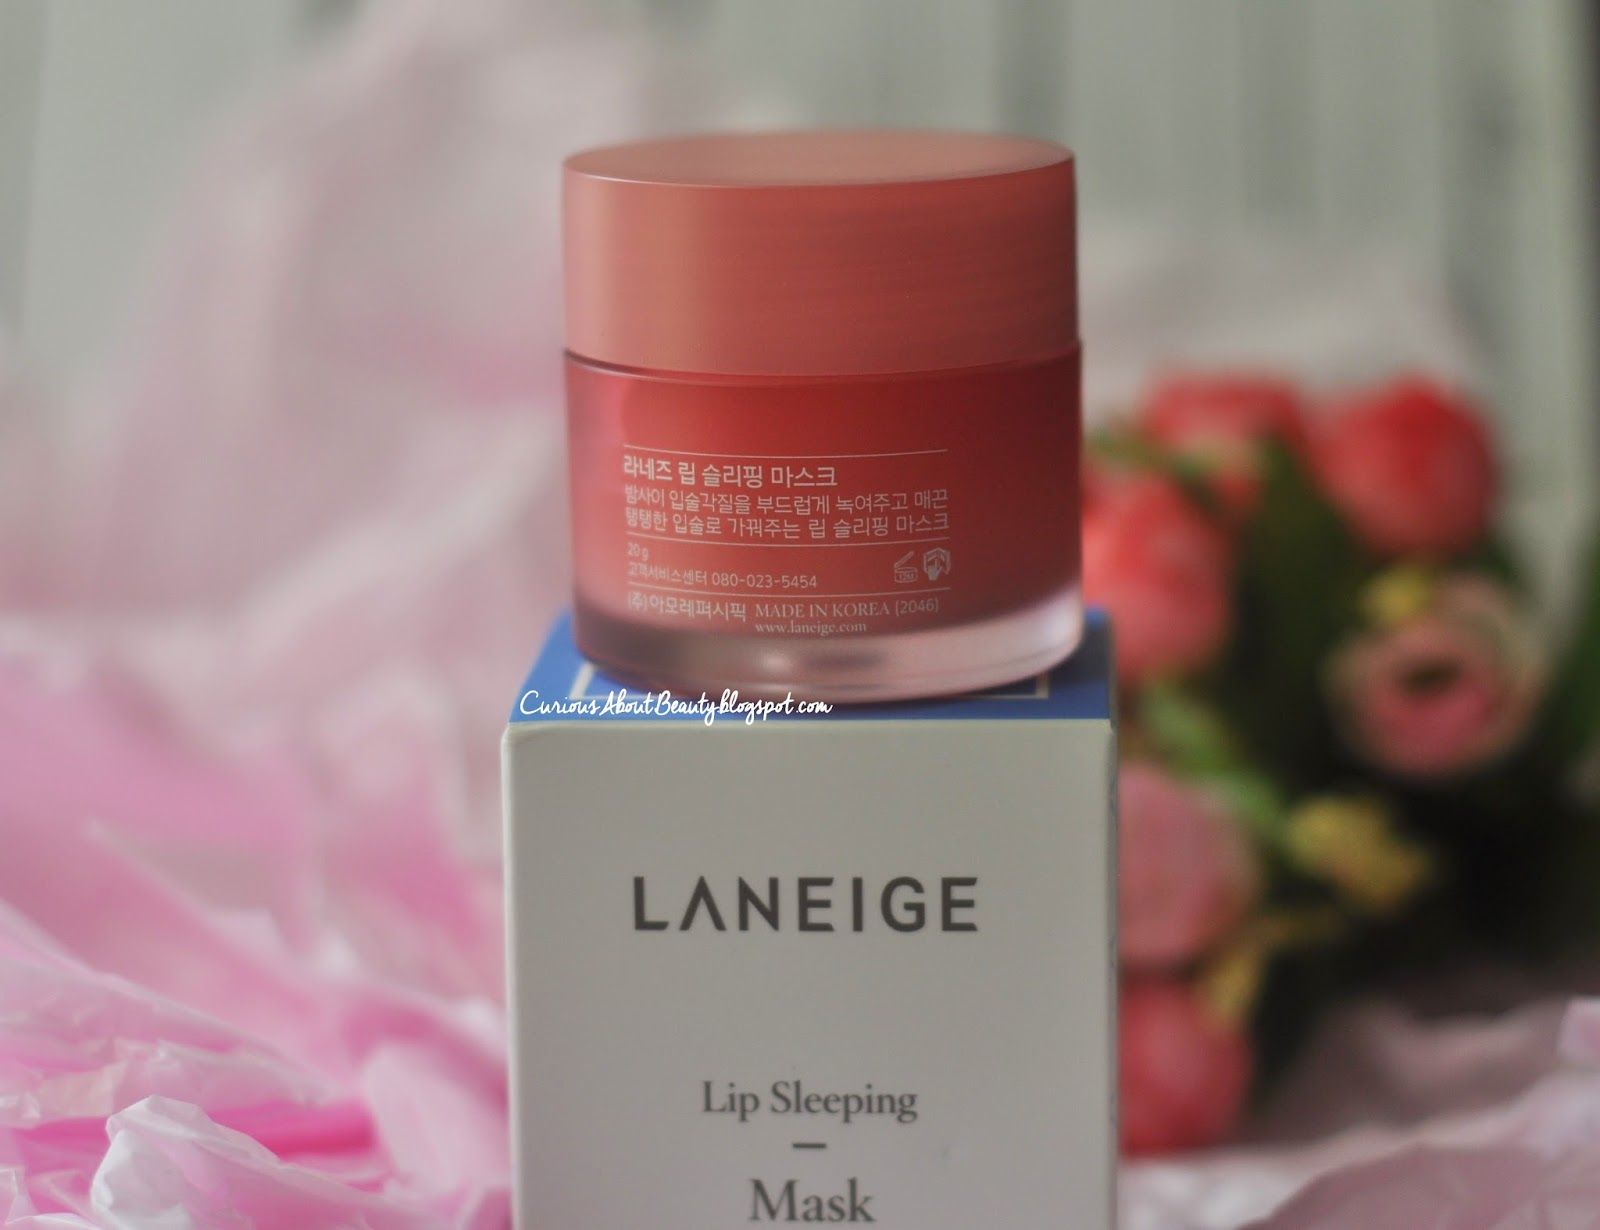 Curious About Beauty Travel And Life Review Laneige Lip Sleeping Mask It Comes With Rubber Safety Cap Silicone Or Spatula So Its More Hygiene